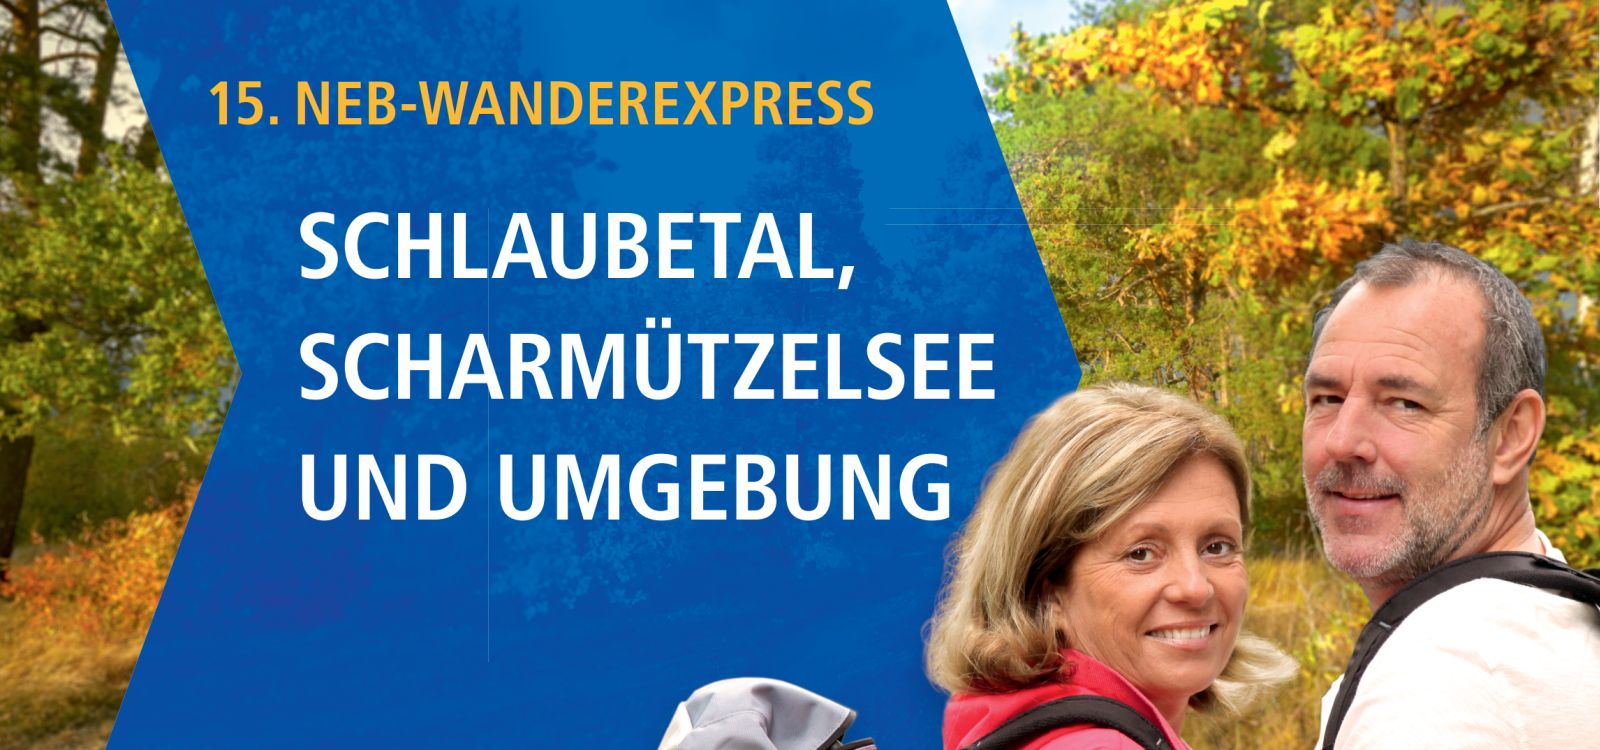 Wanderexpress